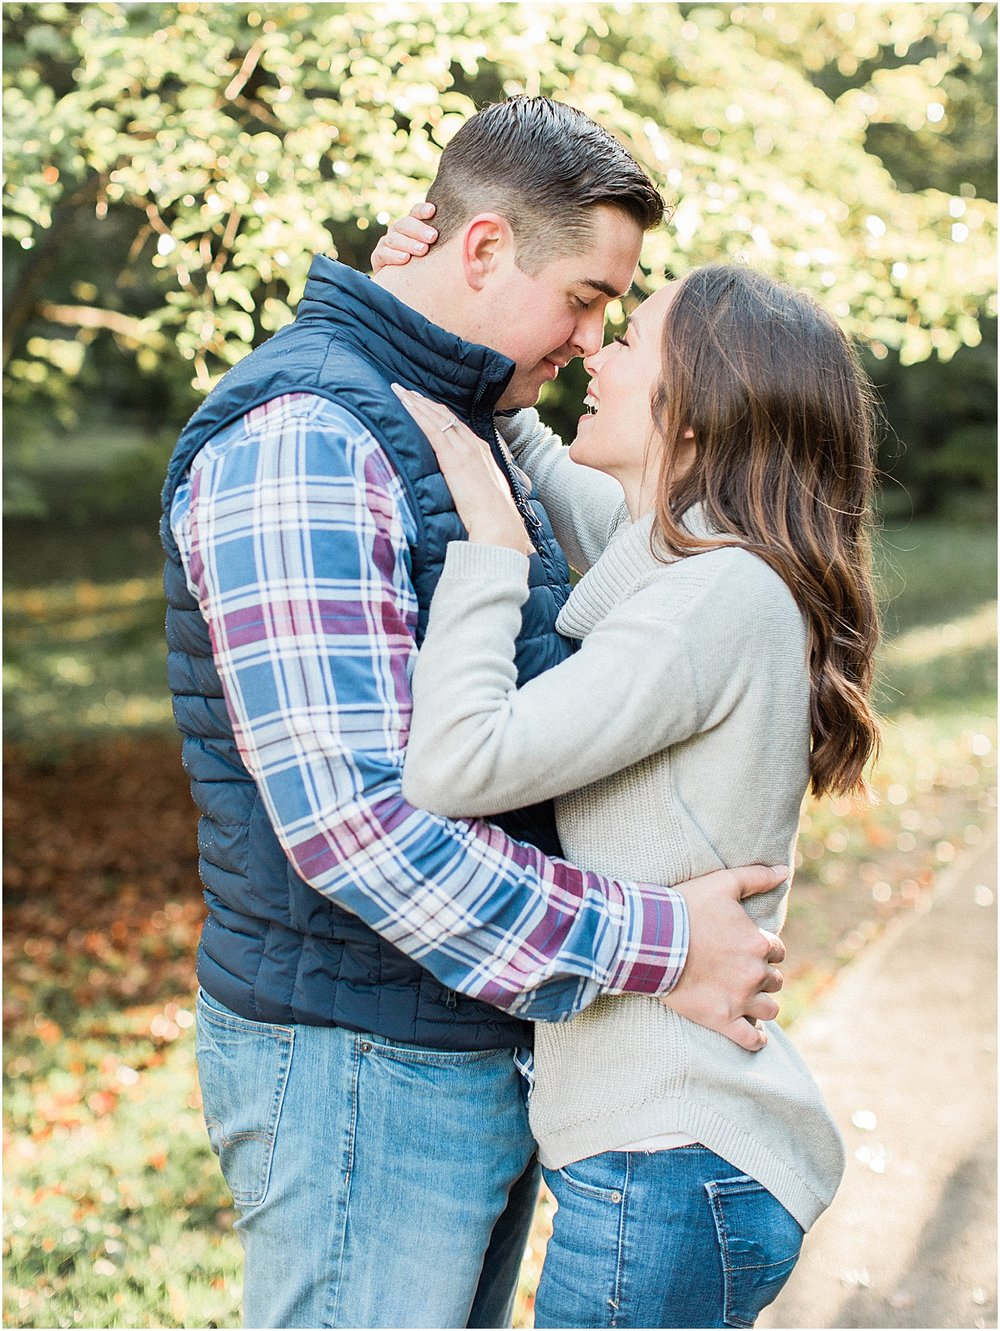 jessica_john_engagement_arnold_arboretum_fall_cape_cod_boston_wedding_photographer_meredith_jane_photography_photo_1709.jpg